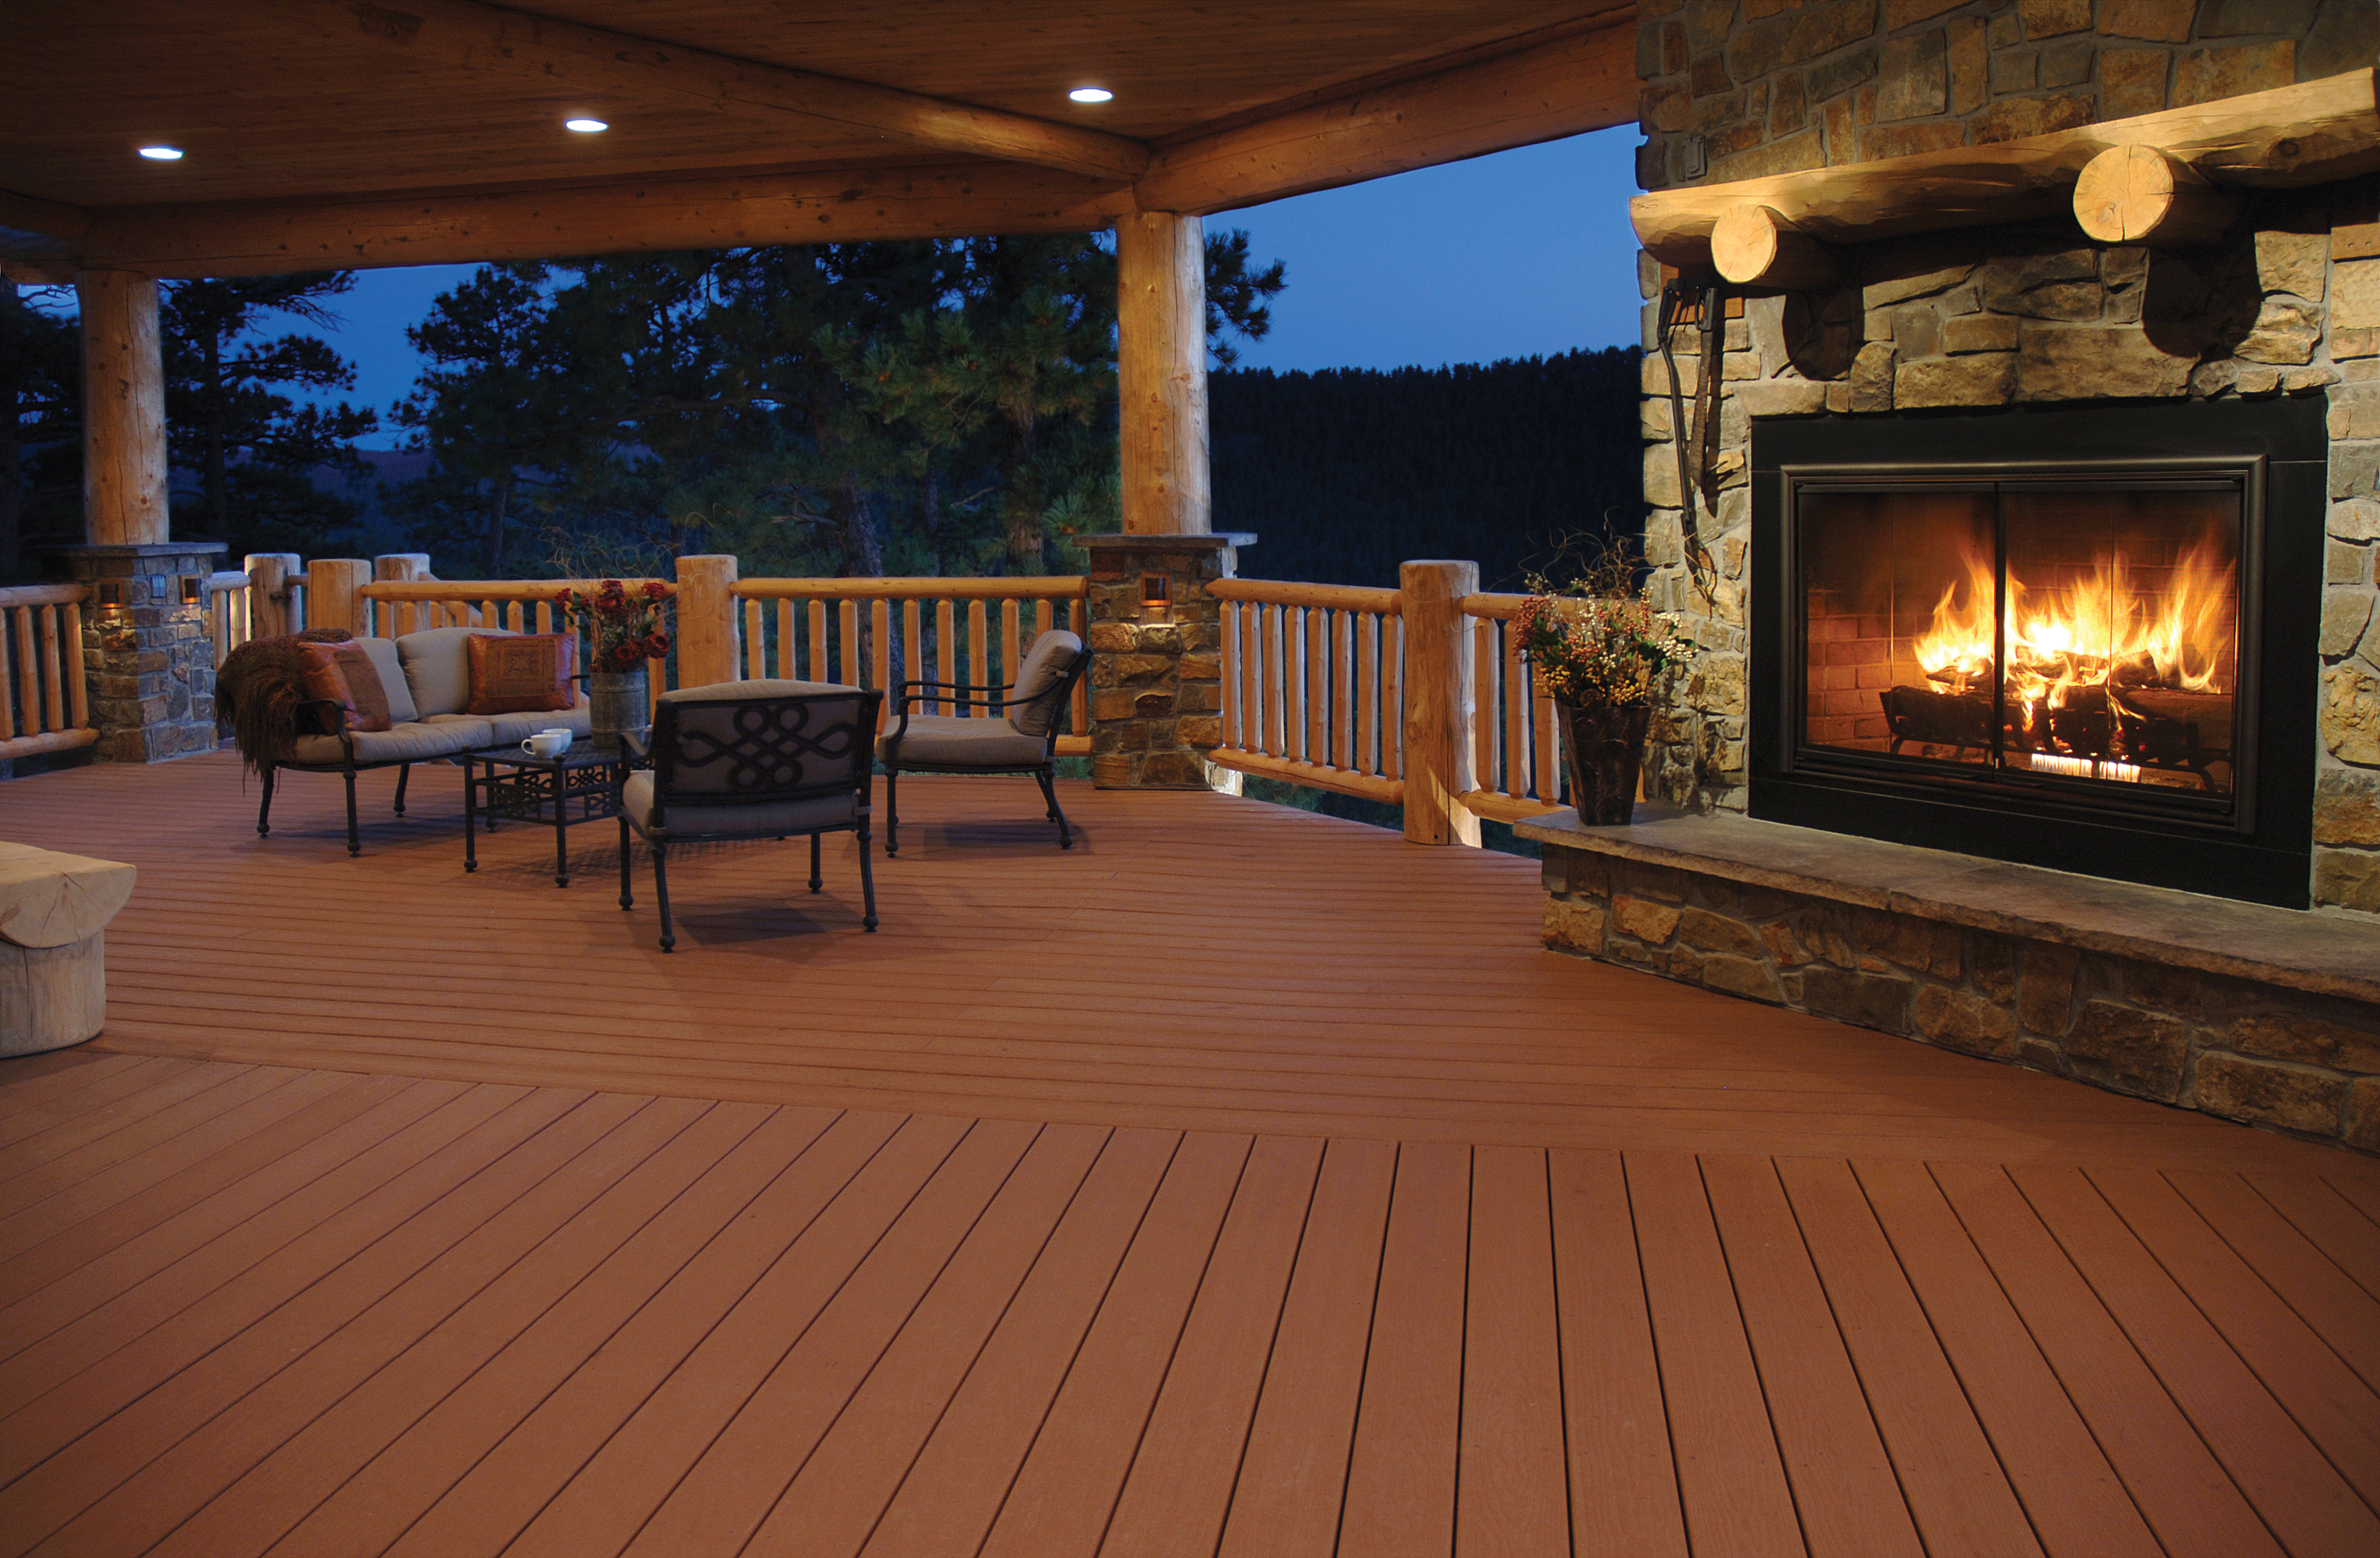 peru evergrain decking matched with cream railing plus sofa set and fireplace for charming patio ideas